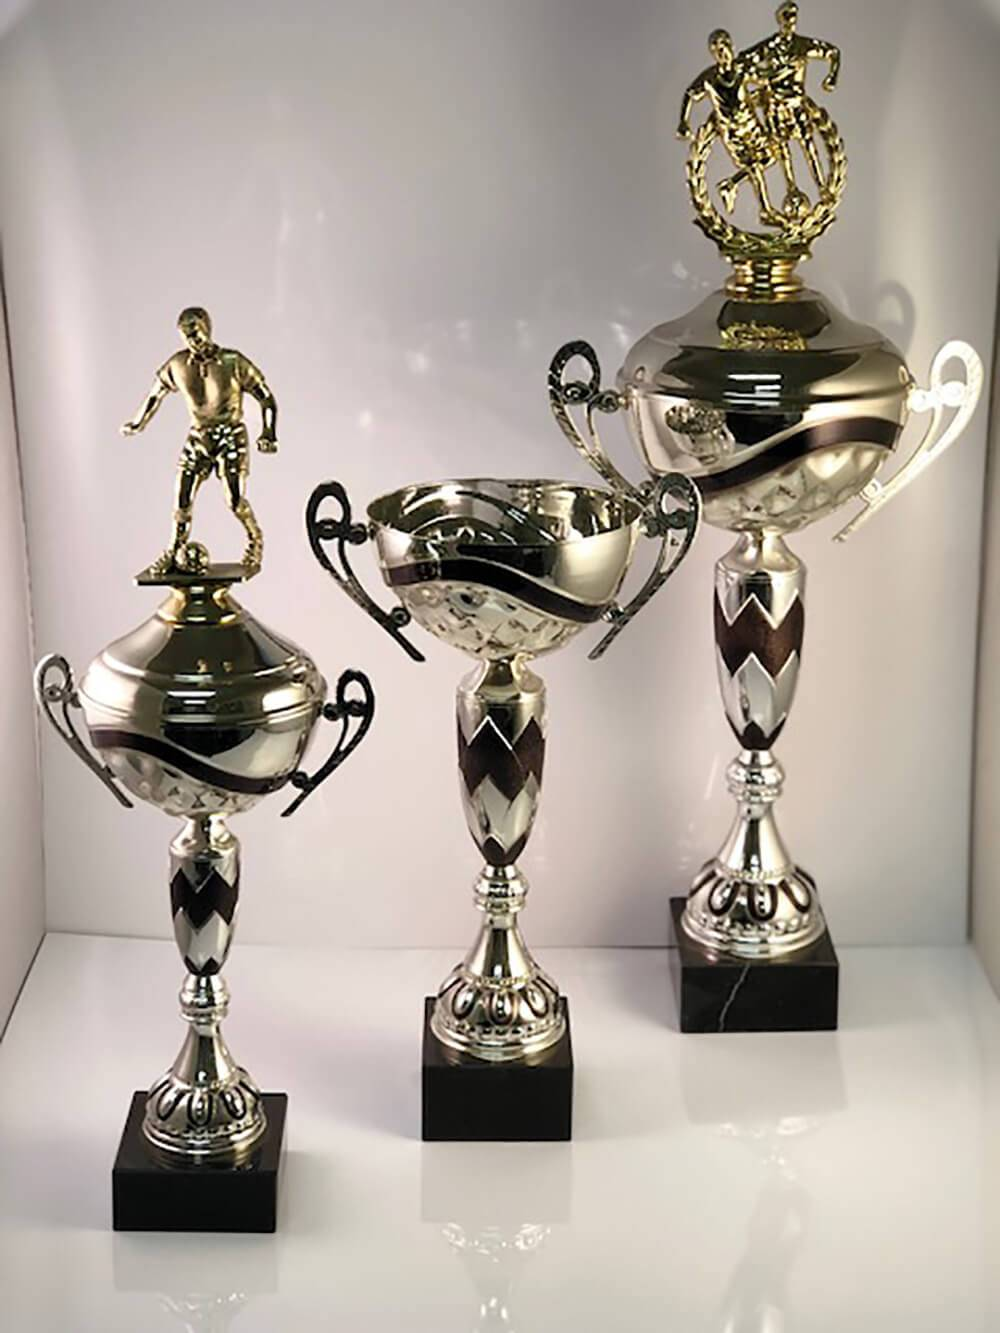 Examples of different statuette cup trophies available for customization at APS.